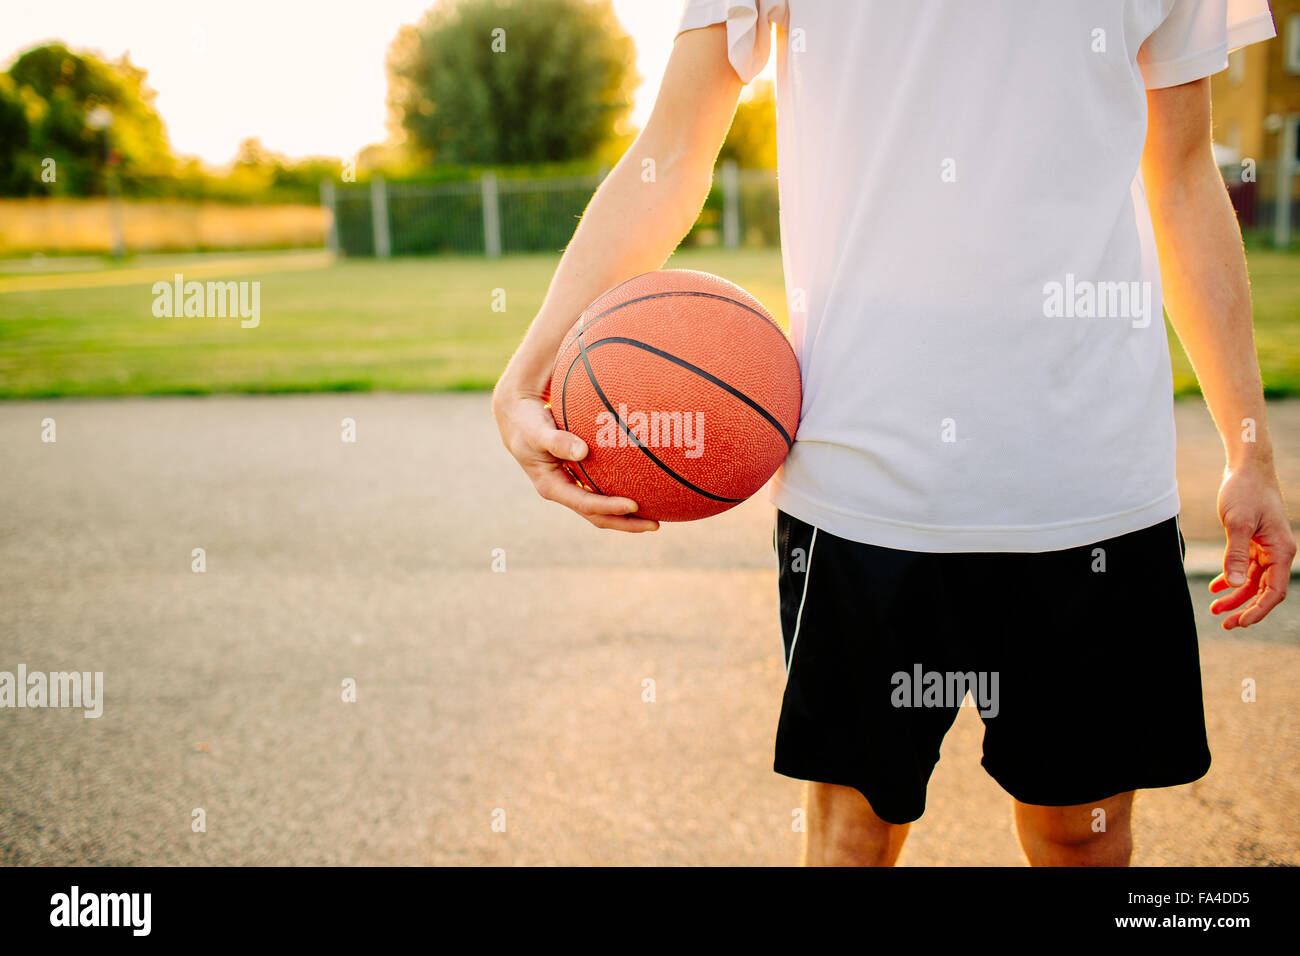 Midsection of man holding basketball at court in park - Stock Image